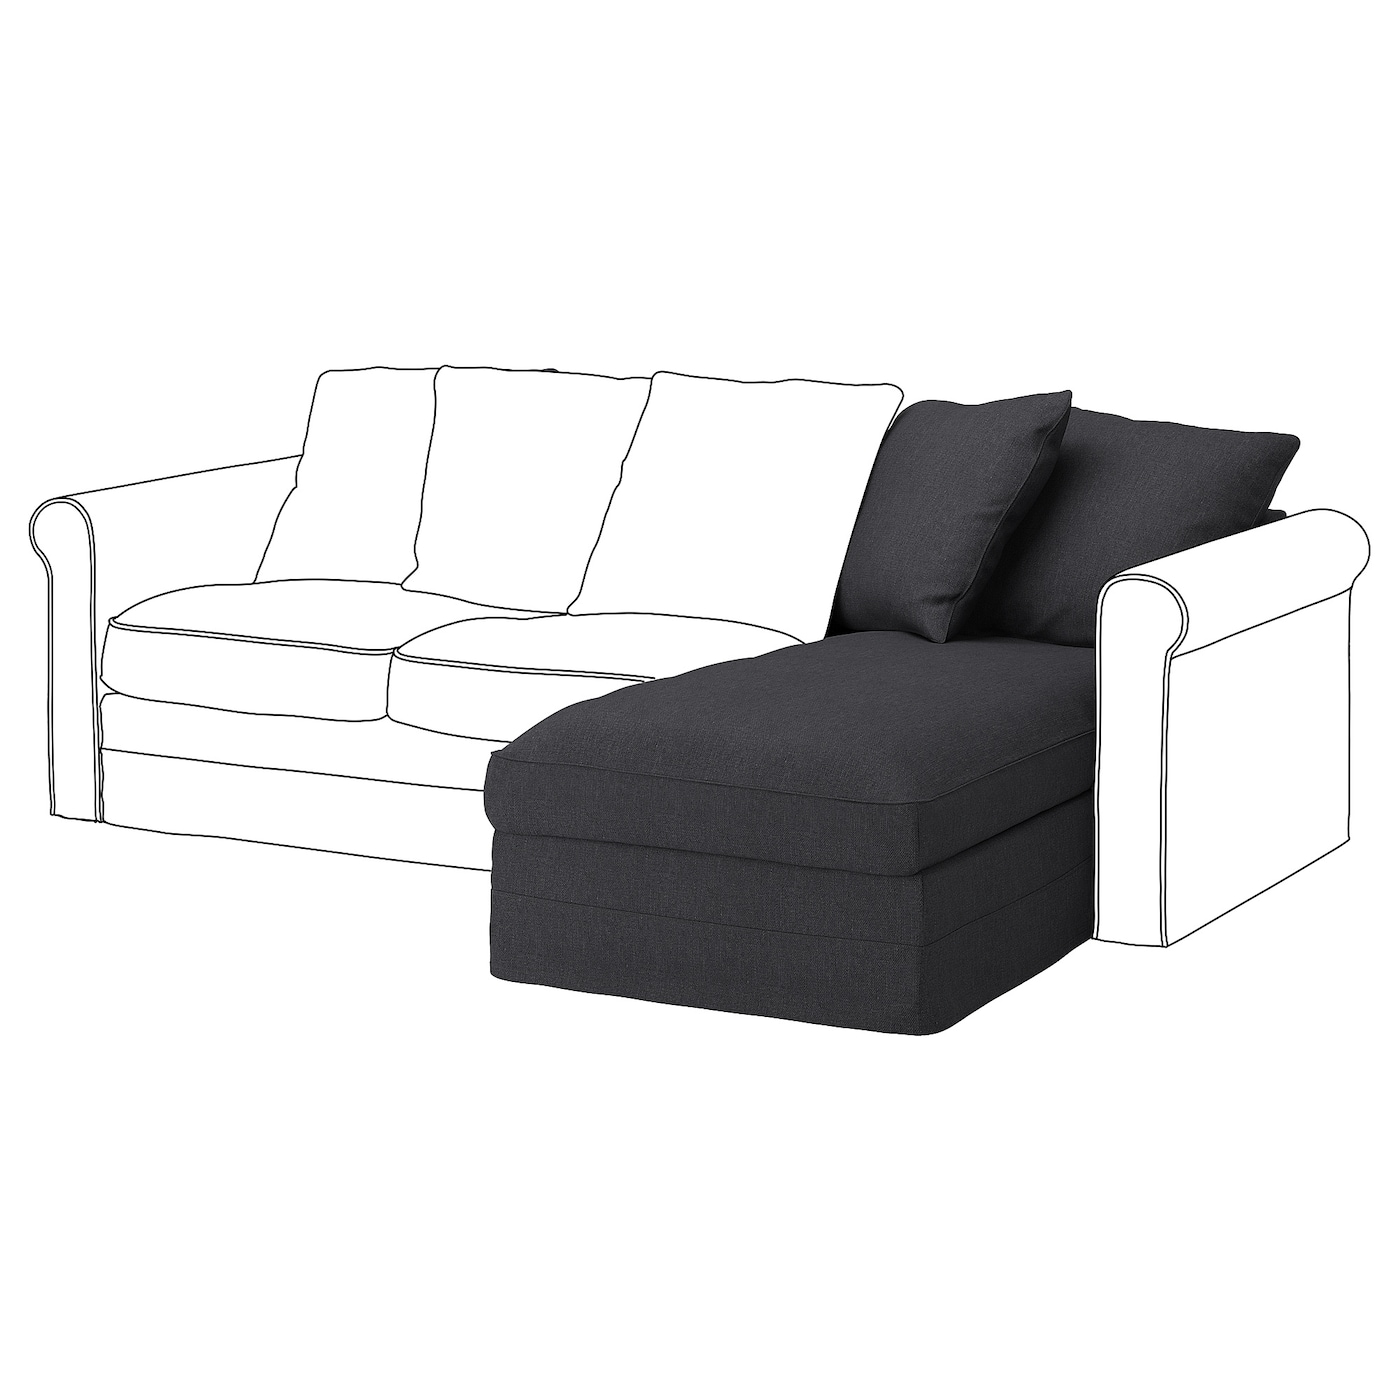 IKEA GRÖNLID hoes voor chaise longue-element